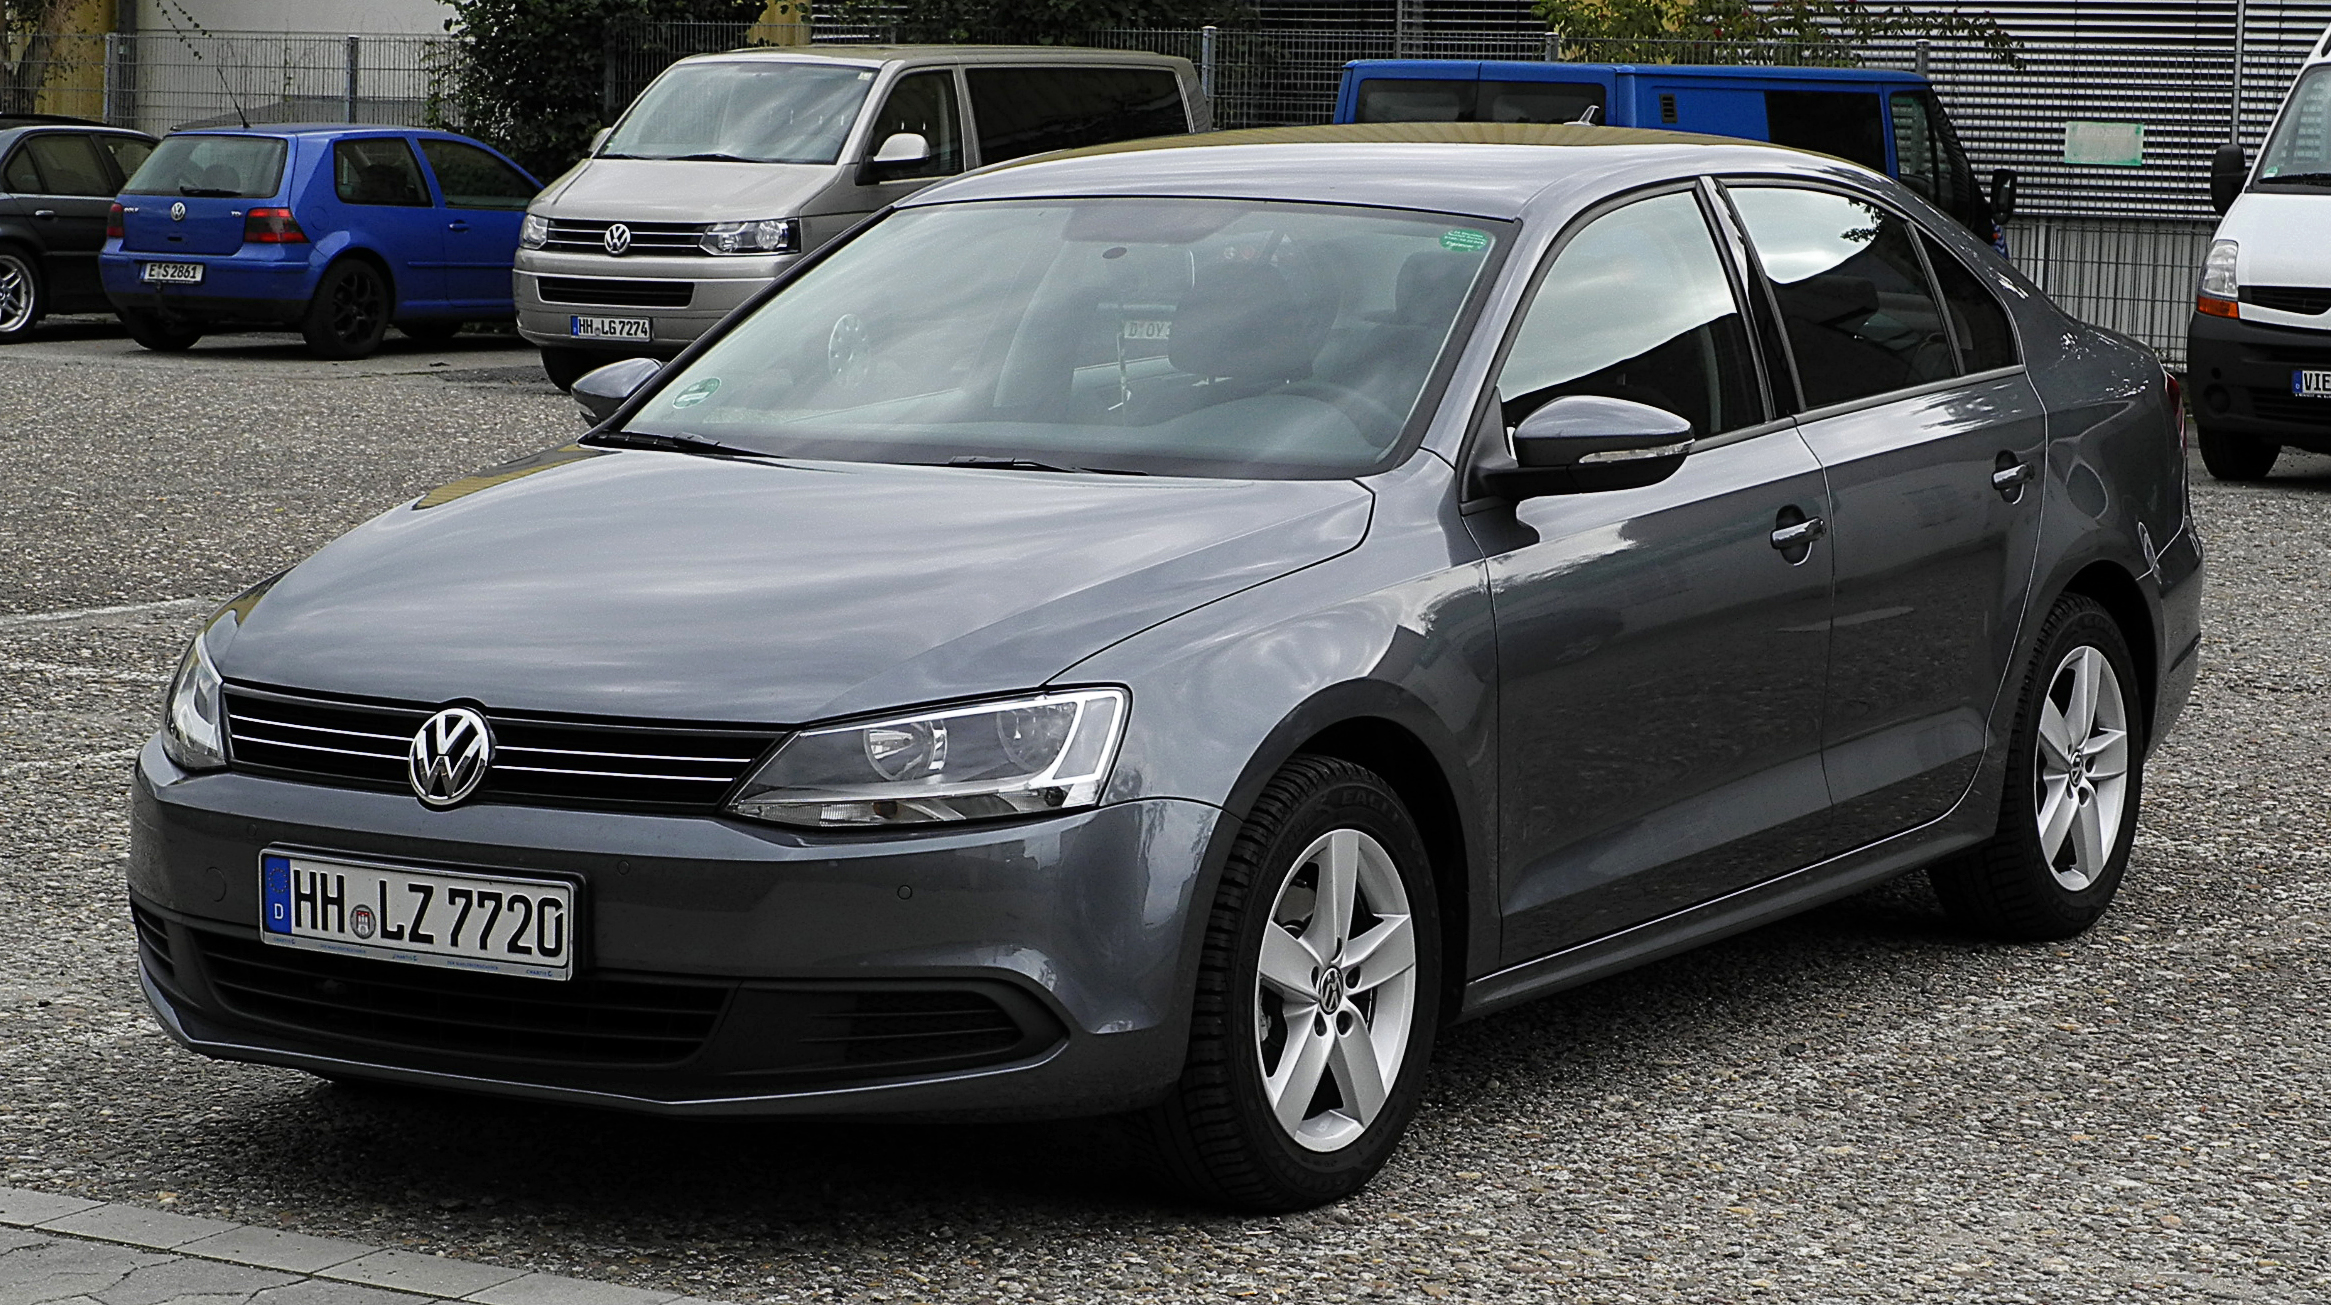 Volkswagen Jetta 1.6 2011 photo - 1